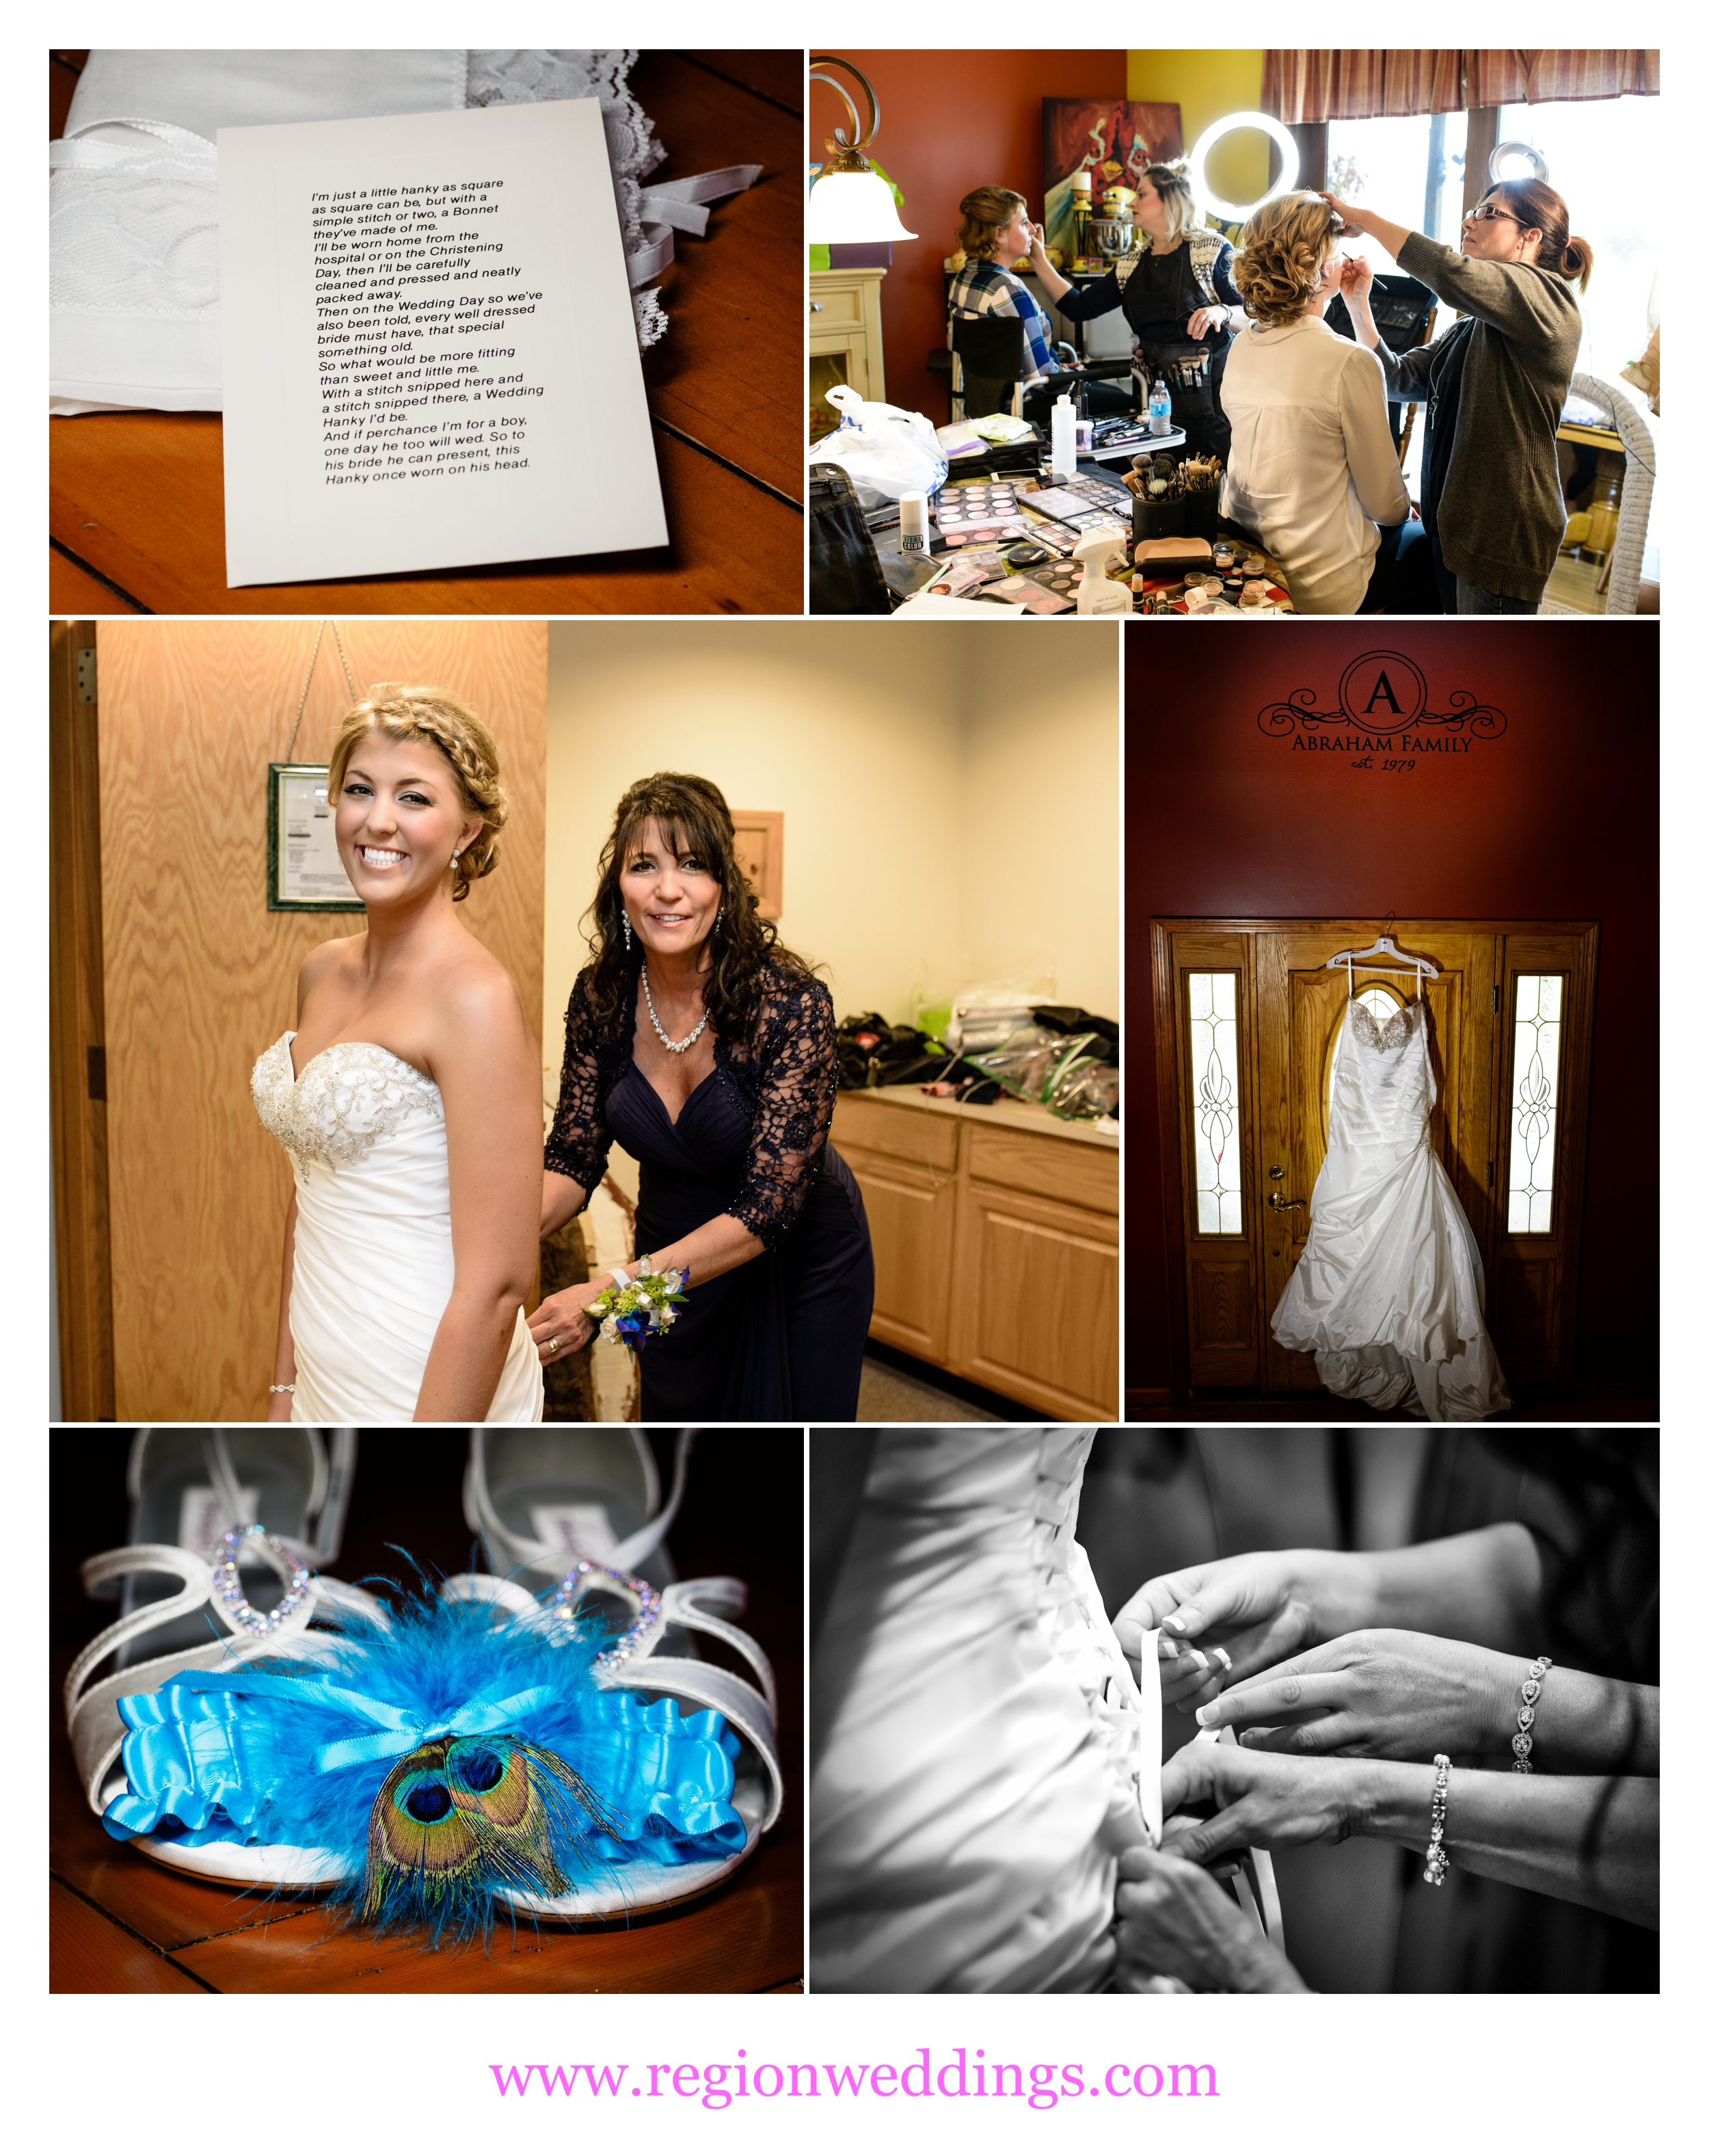 Bridal prep for a Fall wedding in Chesterton, Indiana.